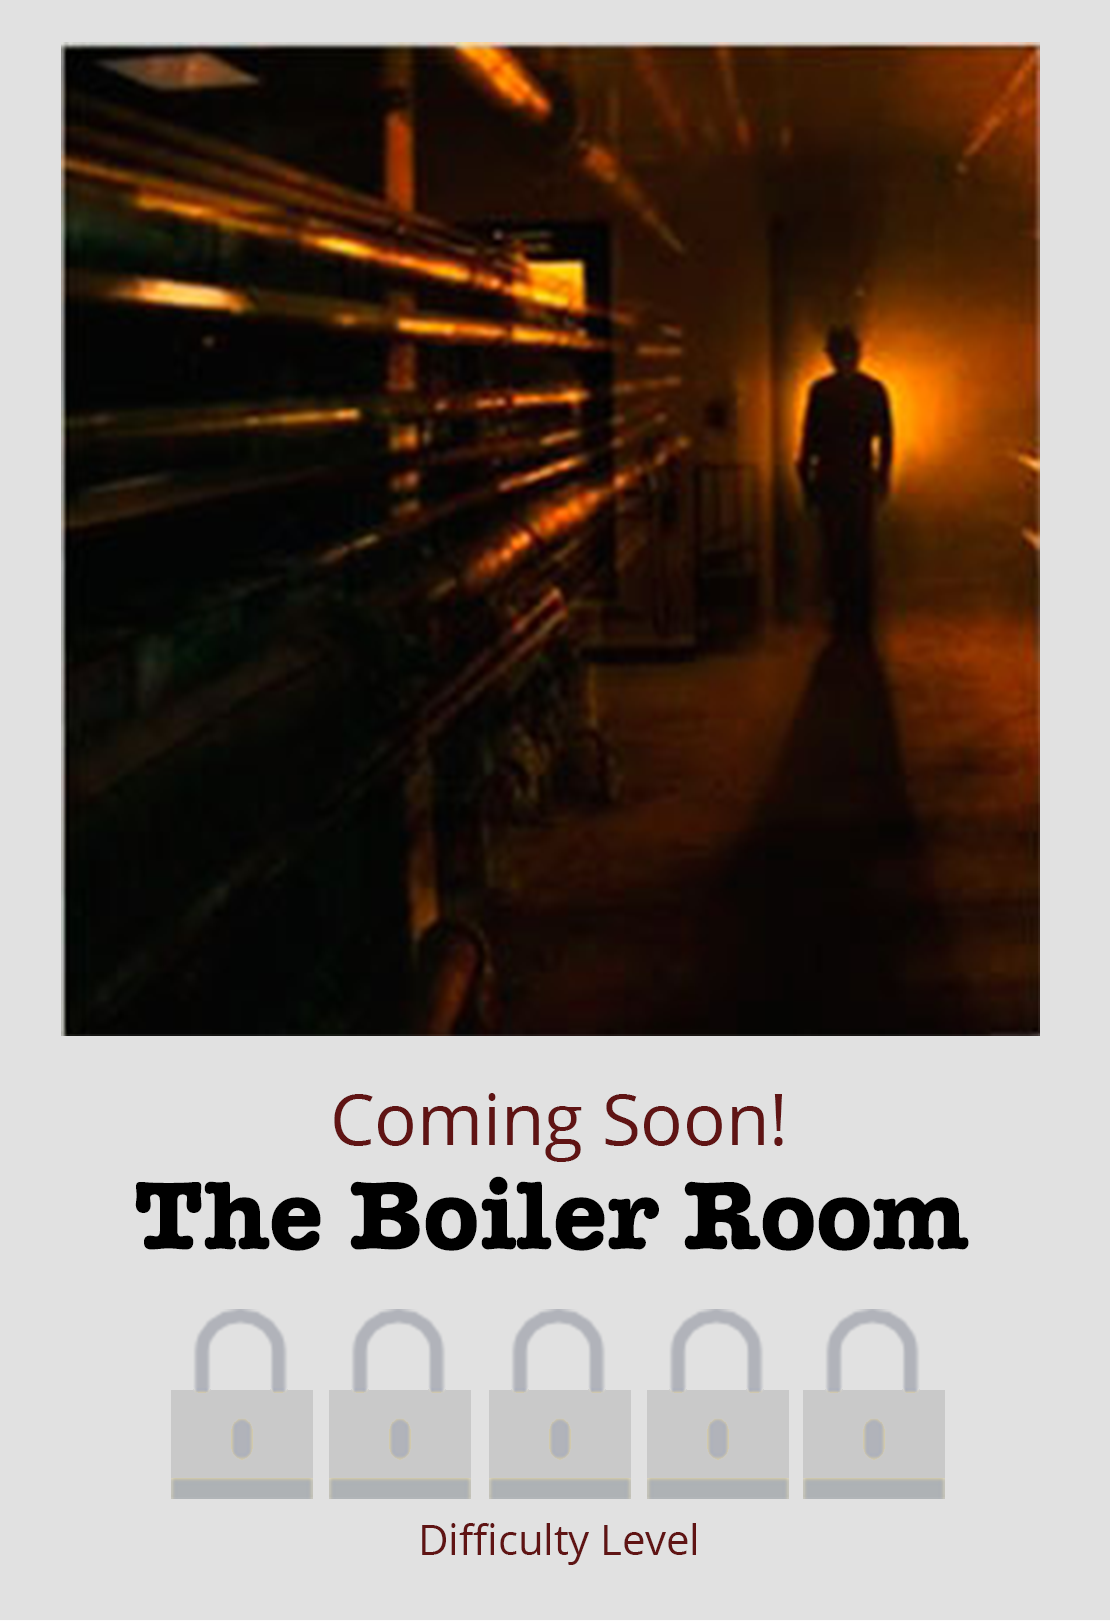 book the exciting boiler room mystery for your next date night